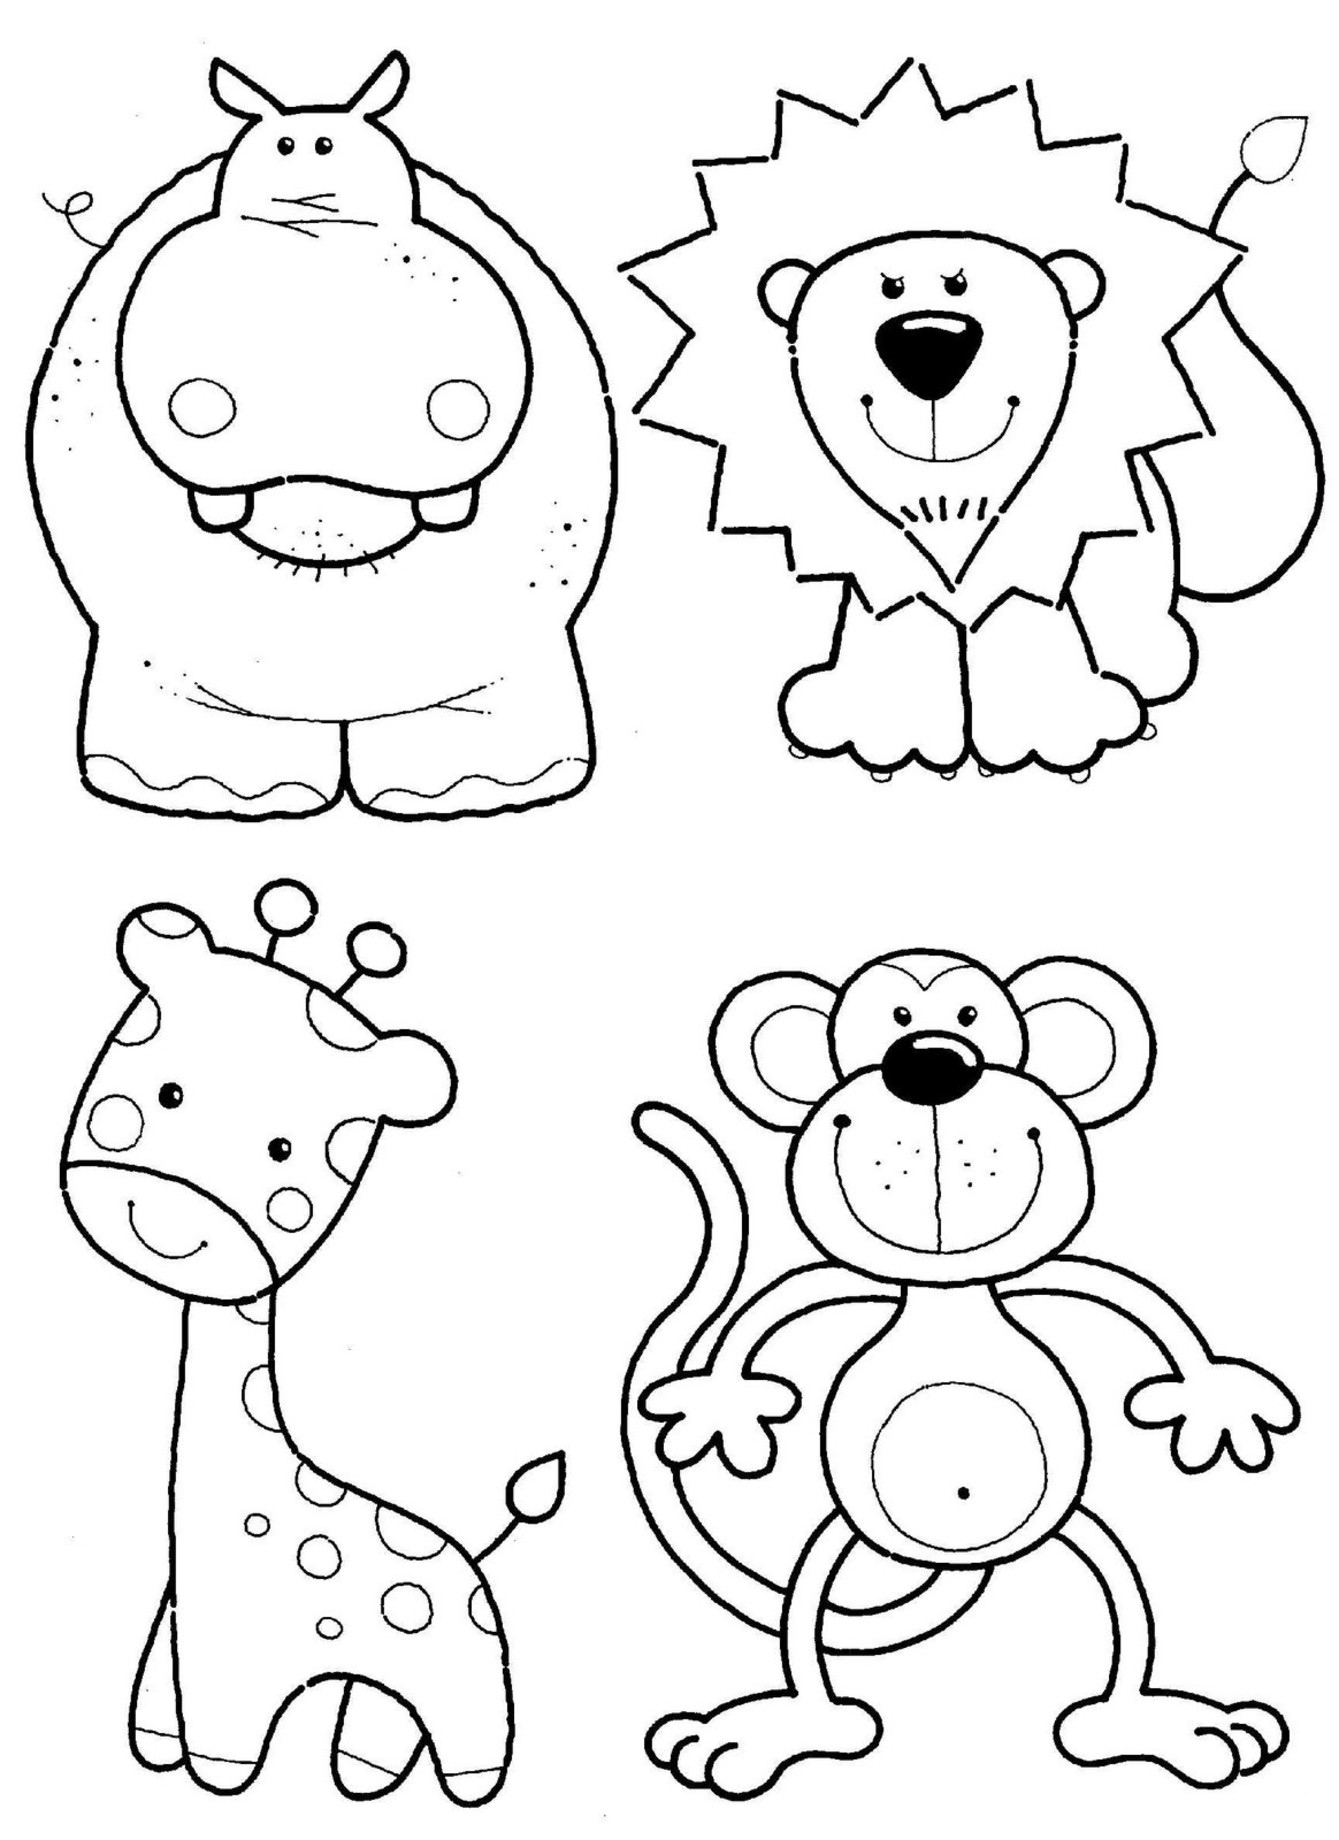 cute coloring animal pages wild animal coloring pages best coloring pages for kids pages cute animal coloring